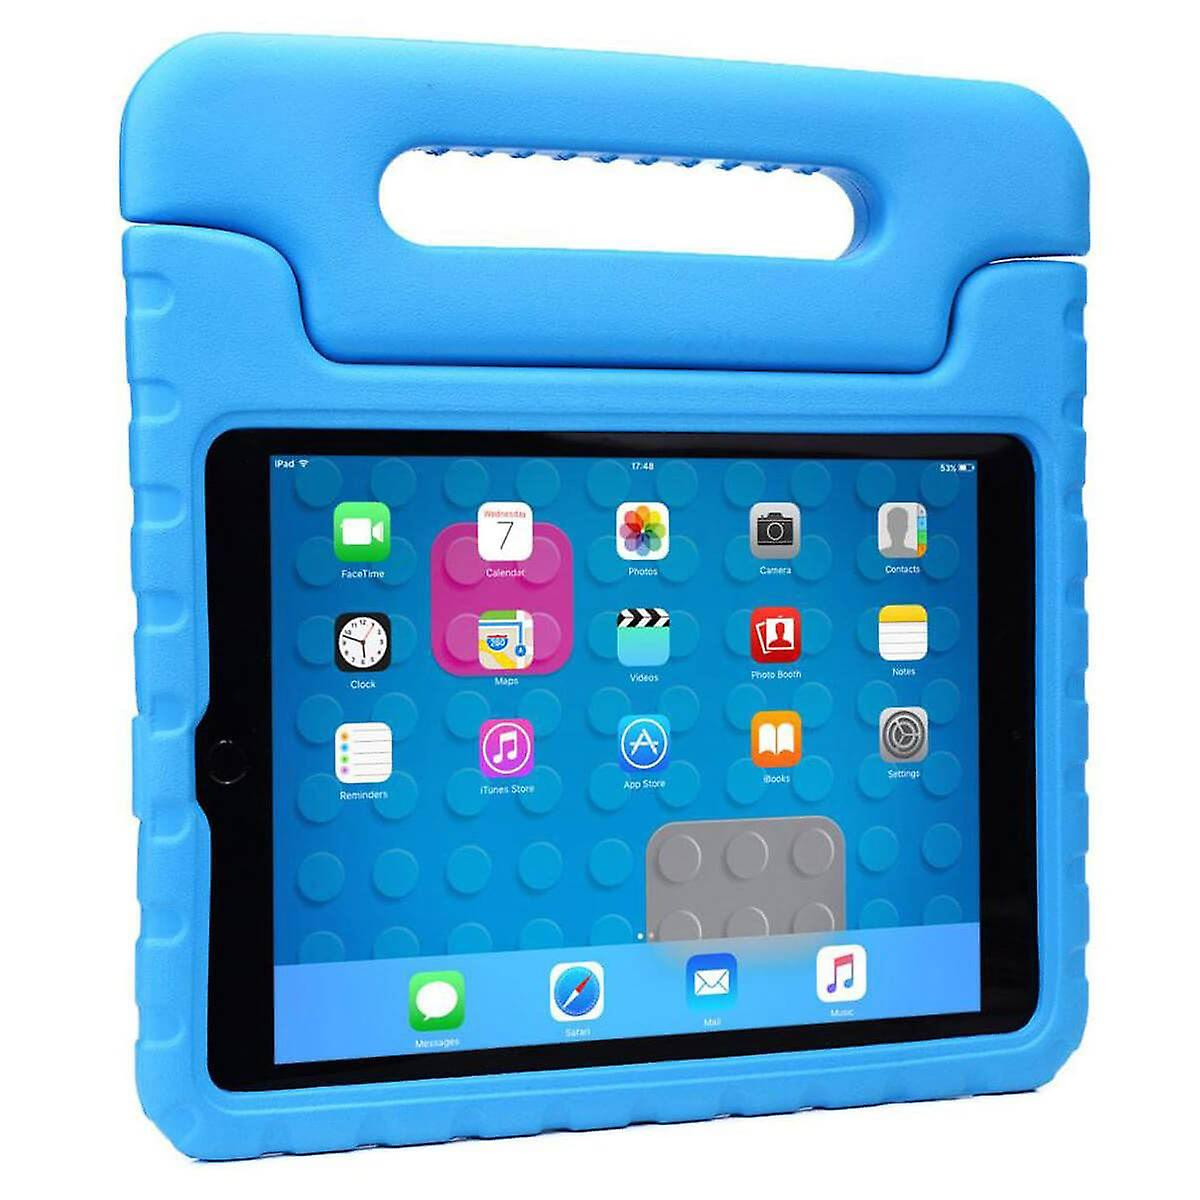 Soft handle iPad Shock Proof Case- Little Hand /Hand Held Case